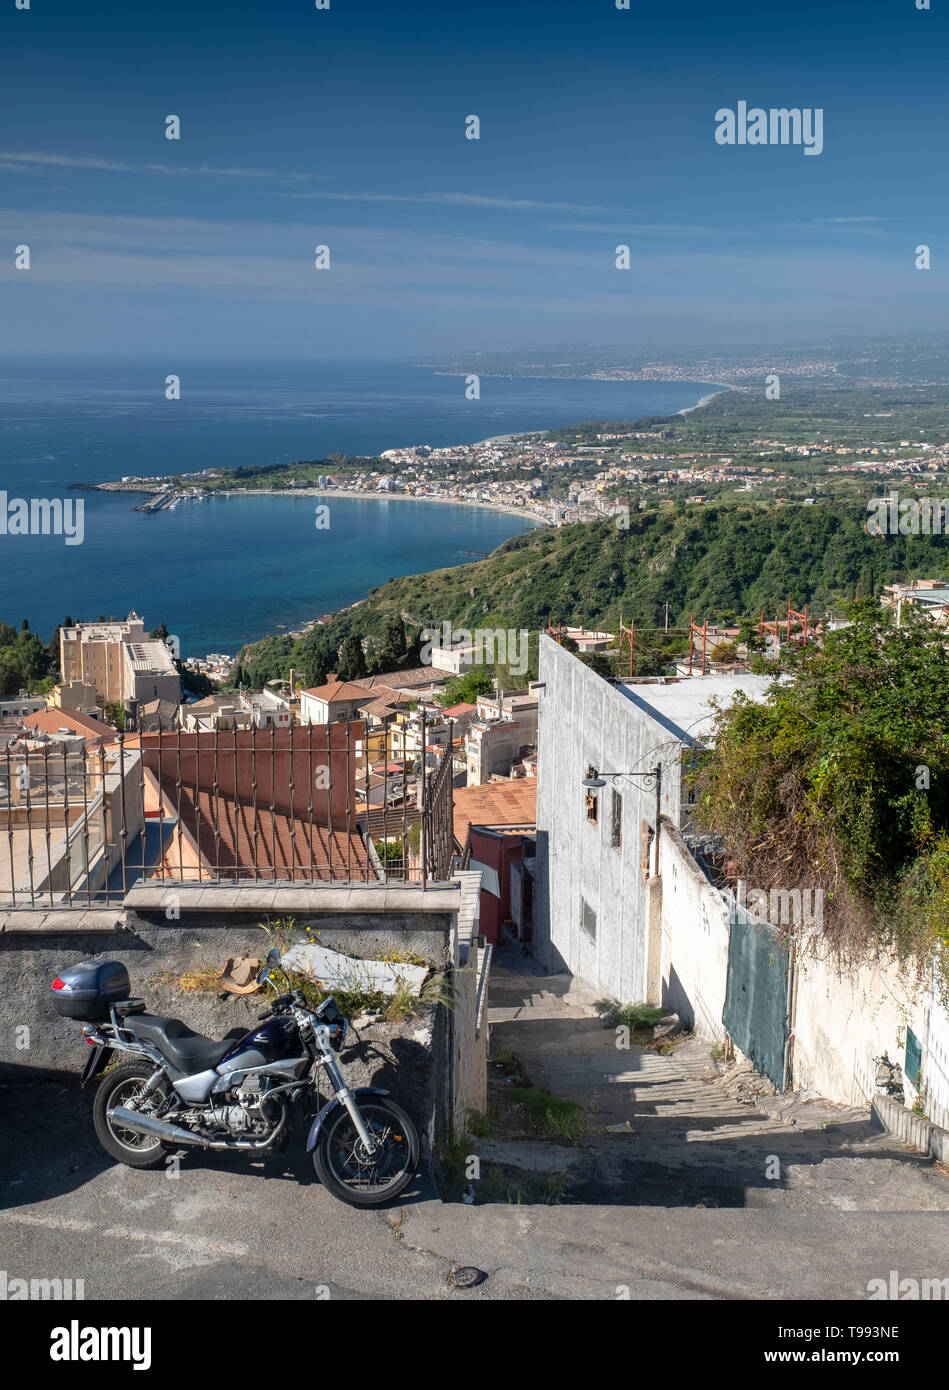 View over the roof tops to the Bay of Naxos, Taormina, Sicily. - Stock Image